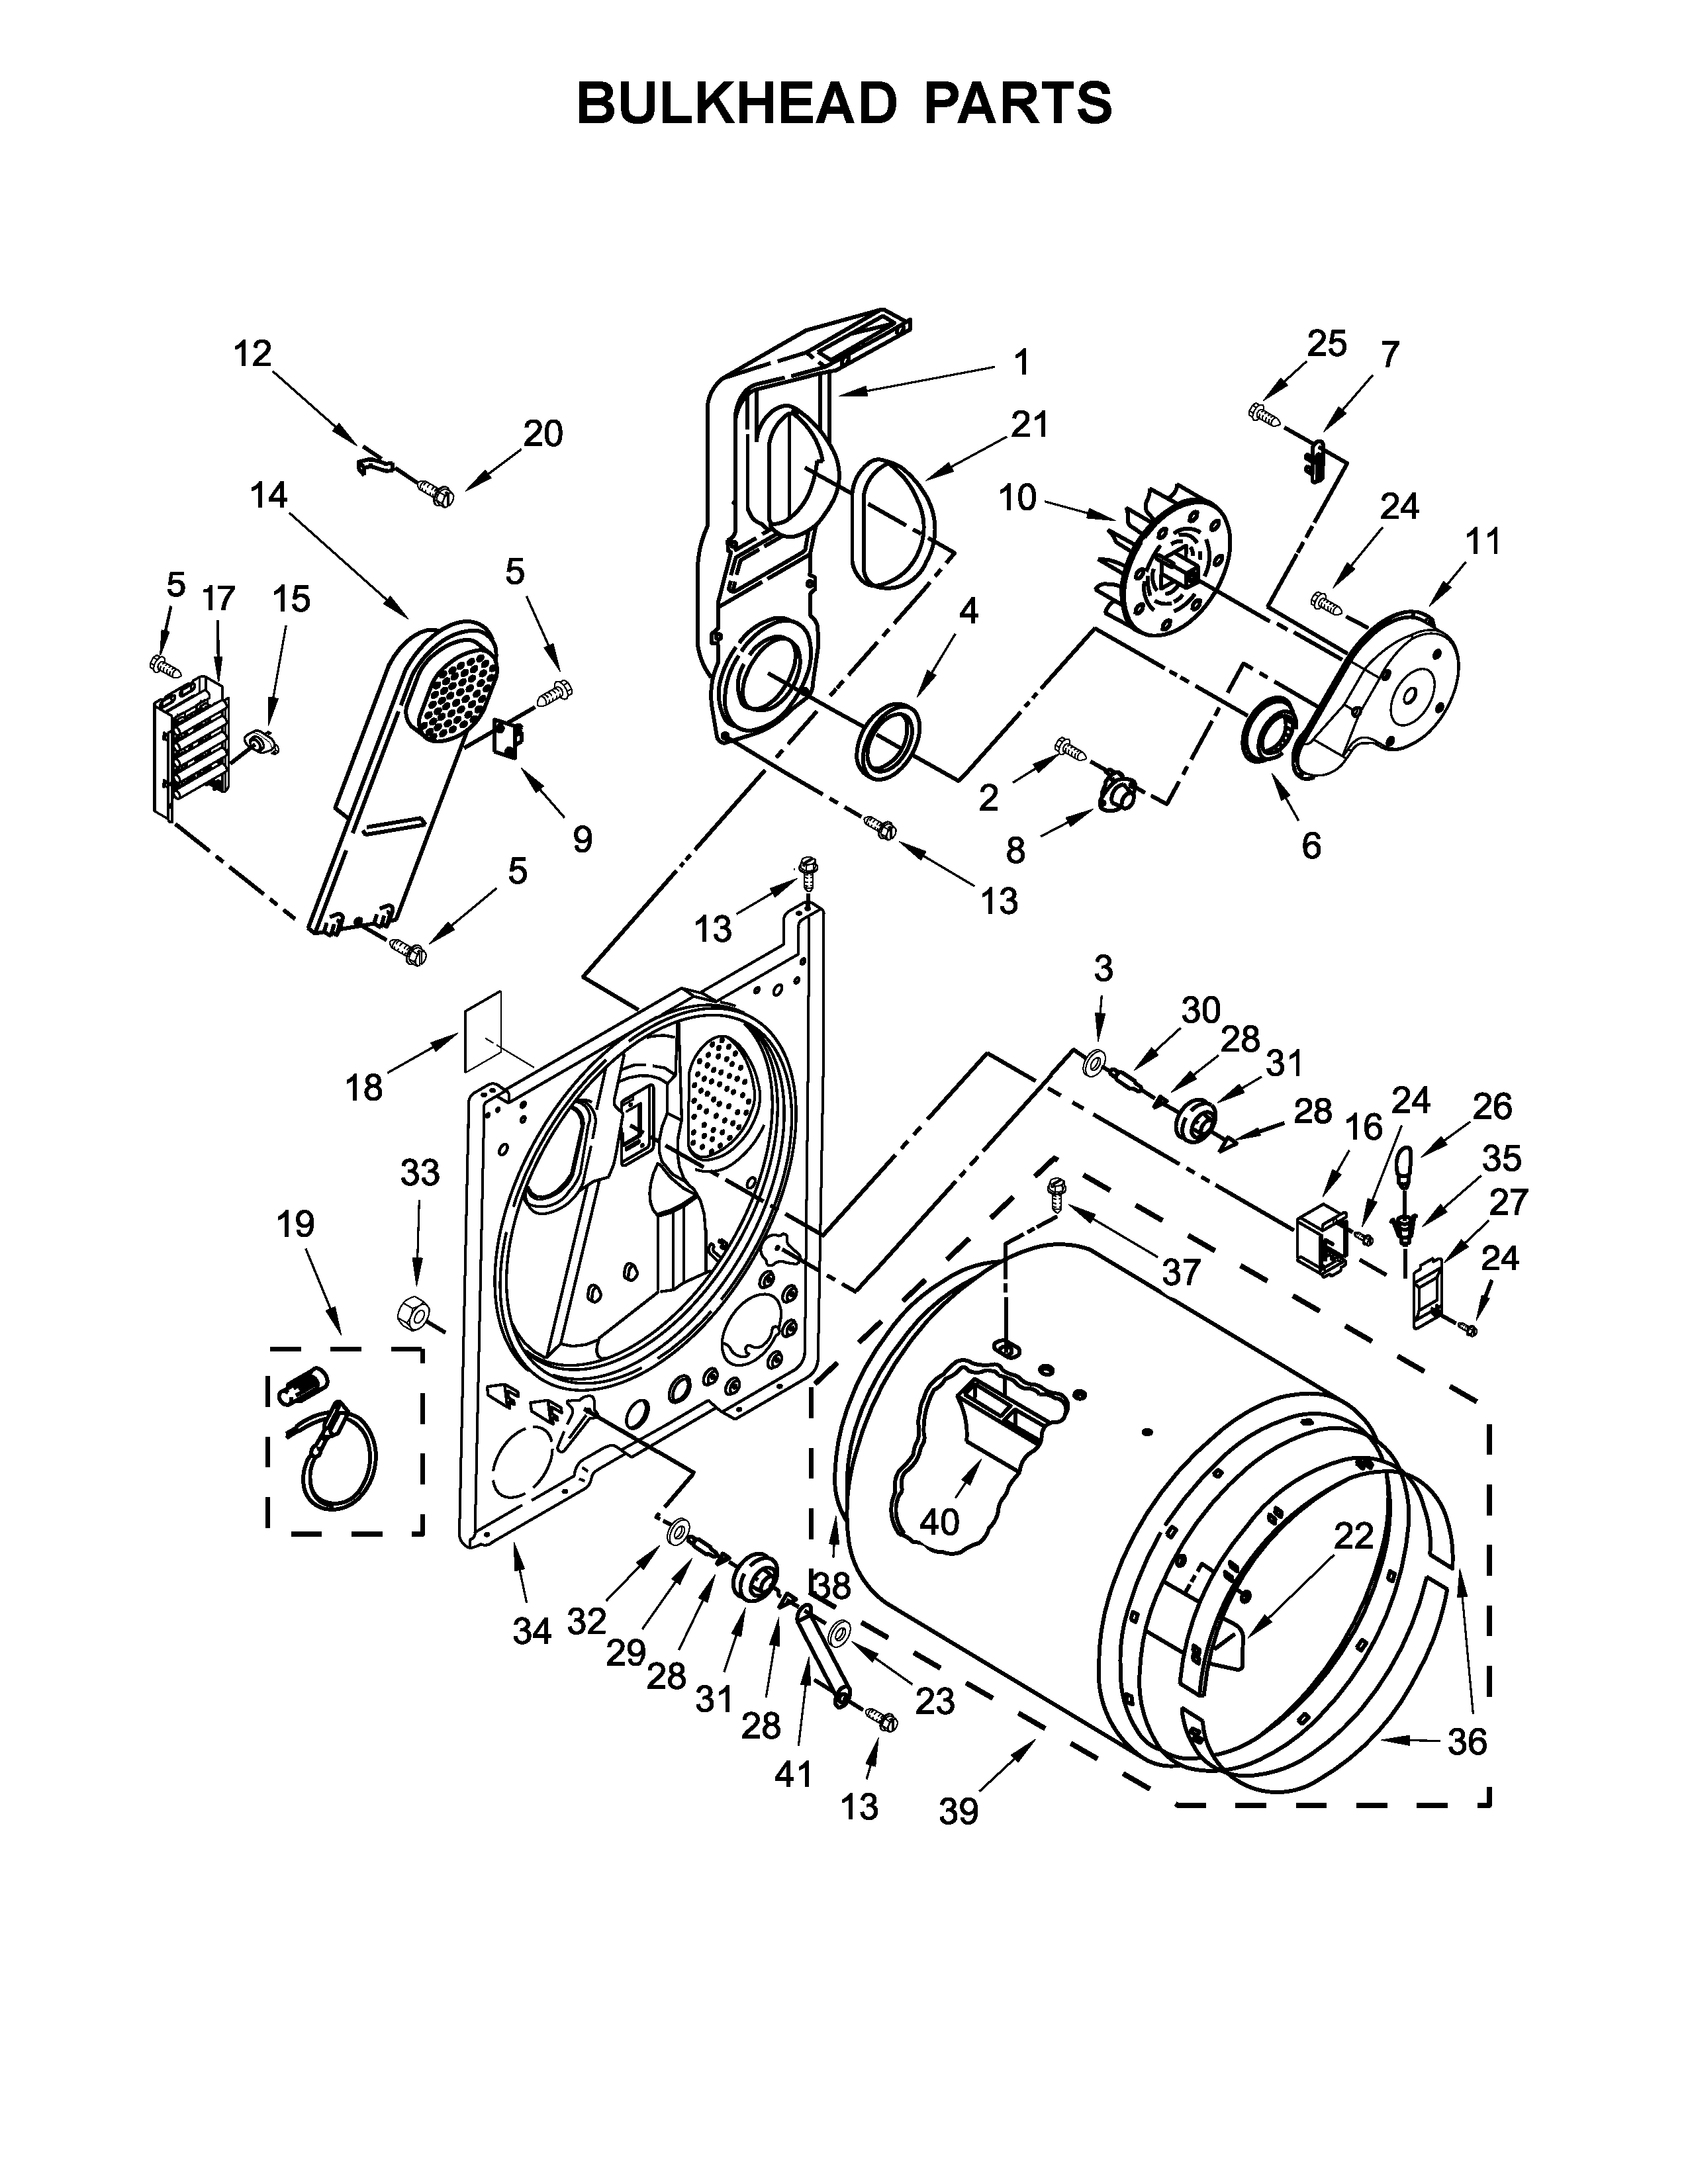 Crosley  Dryer  Bulkhead parts